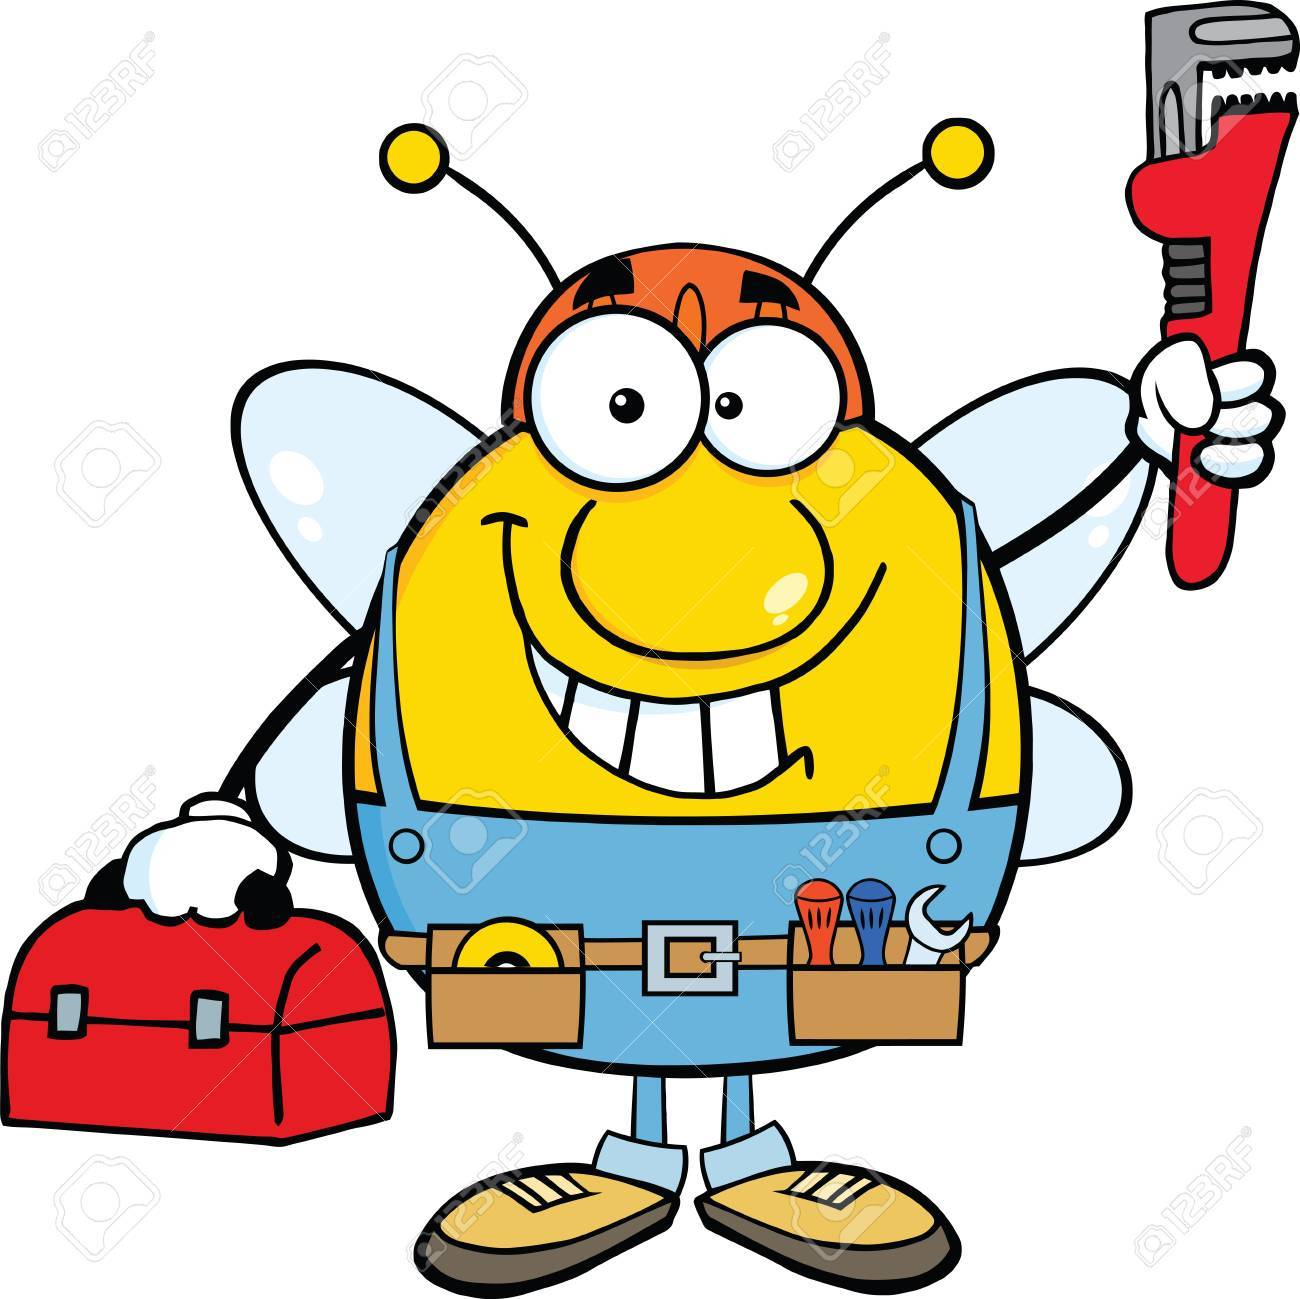 1300x1299 Pudgy Bee Plumber With Wrench And Tool Box Royalty Free Cliparts